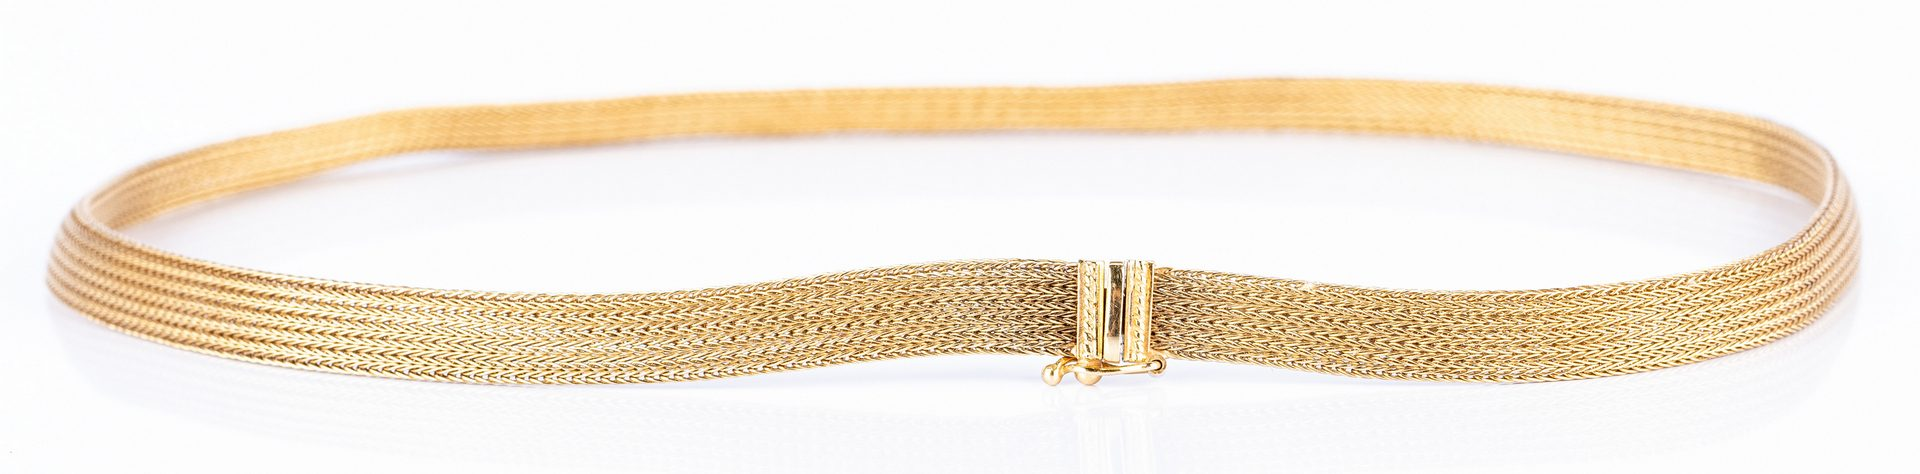 Lot 667: 18K and 14K Mesh Necklaces